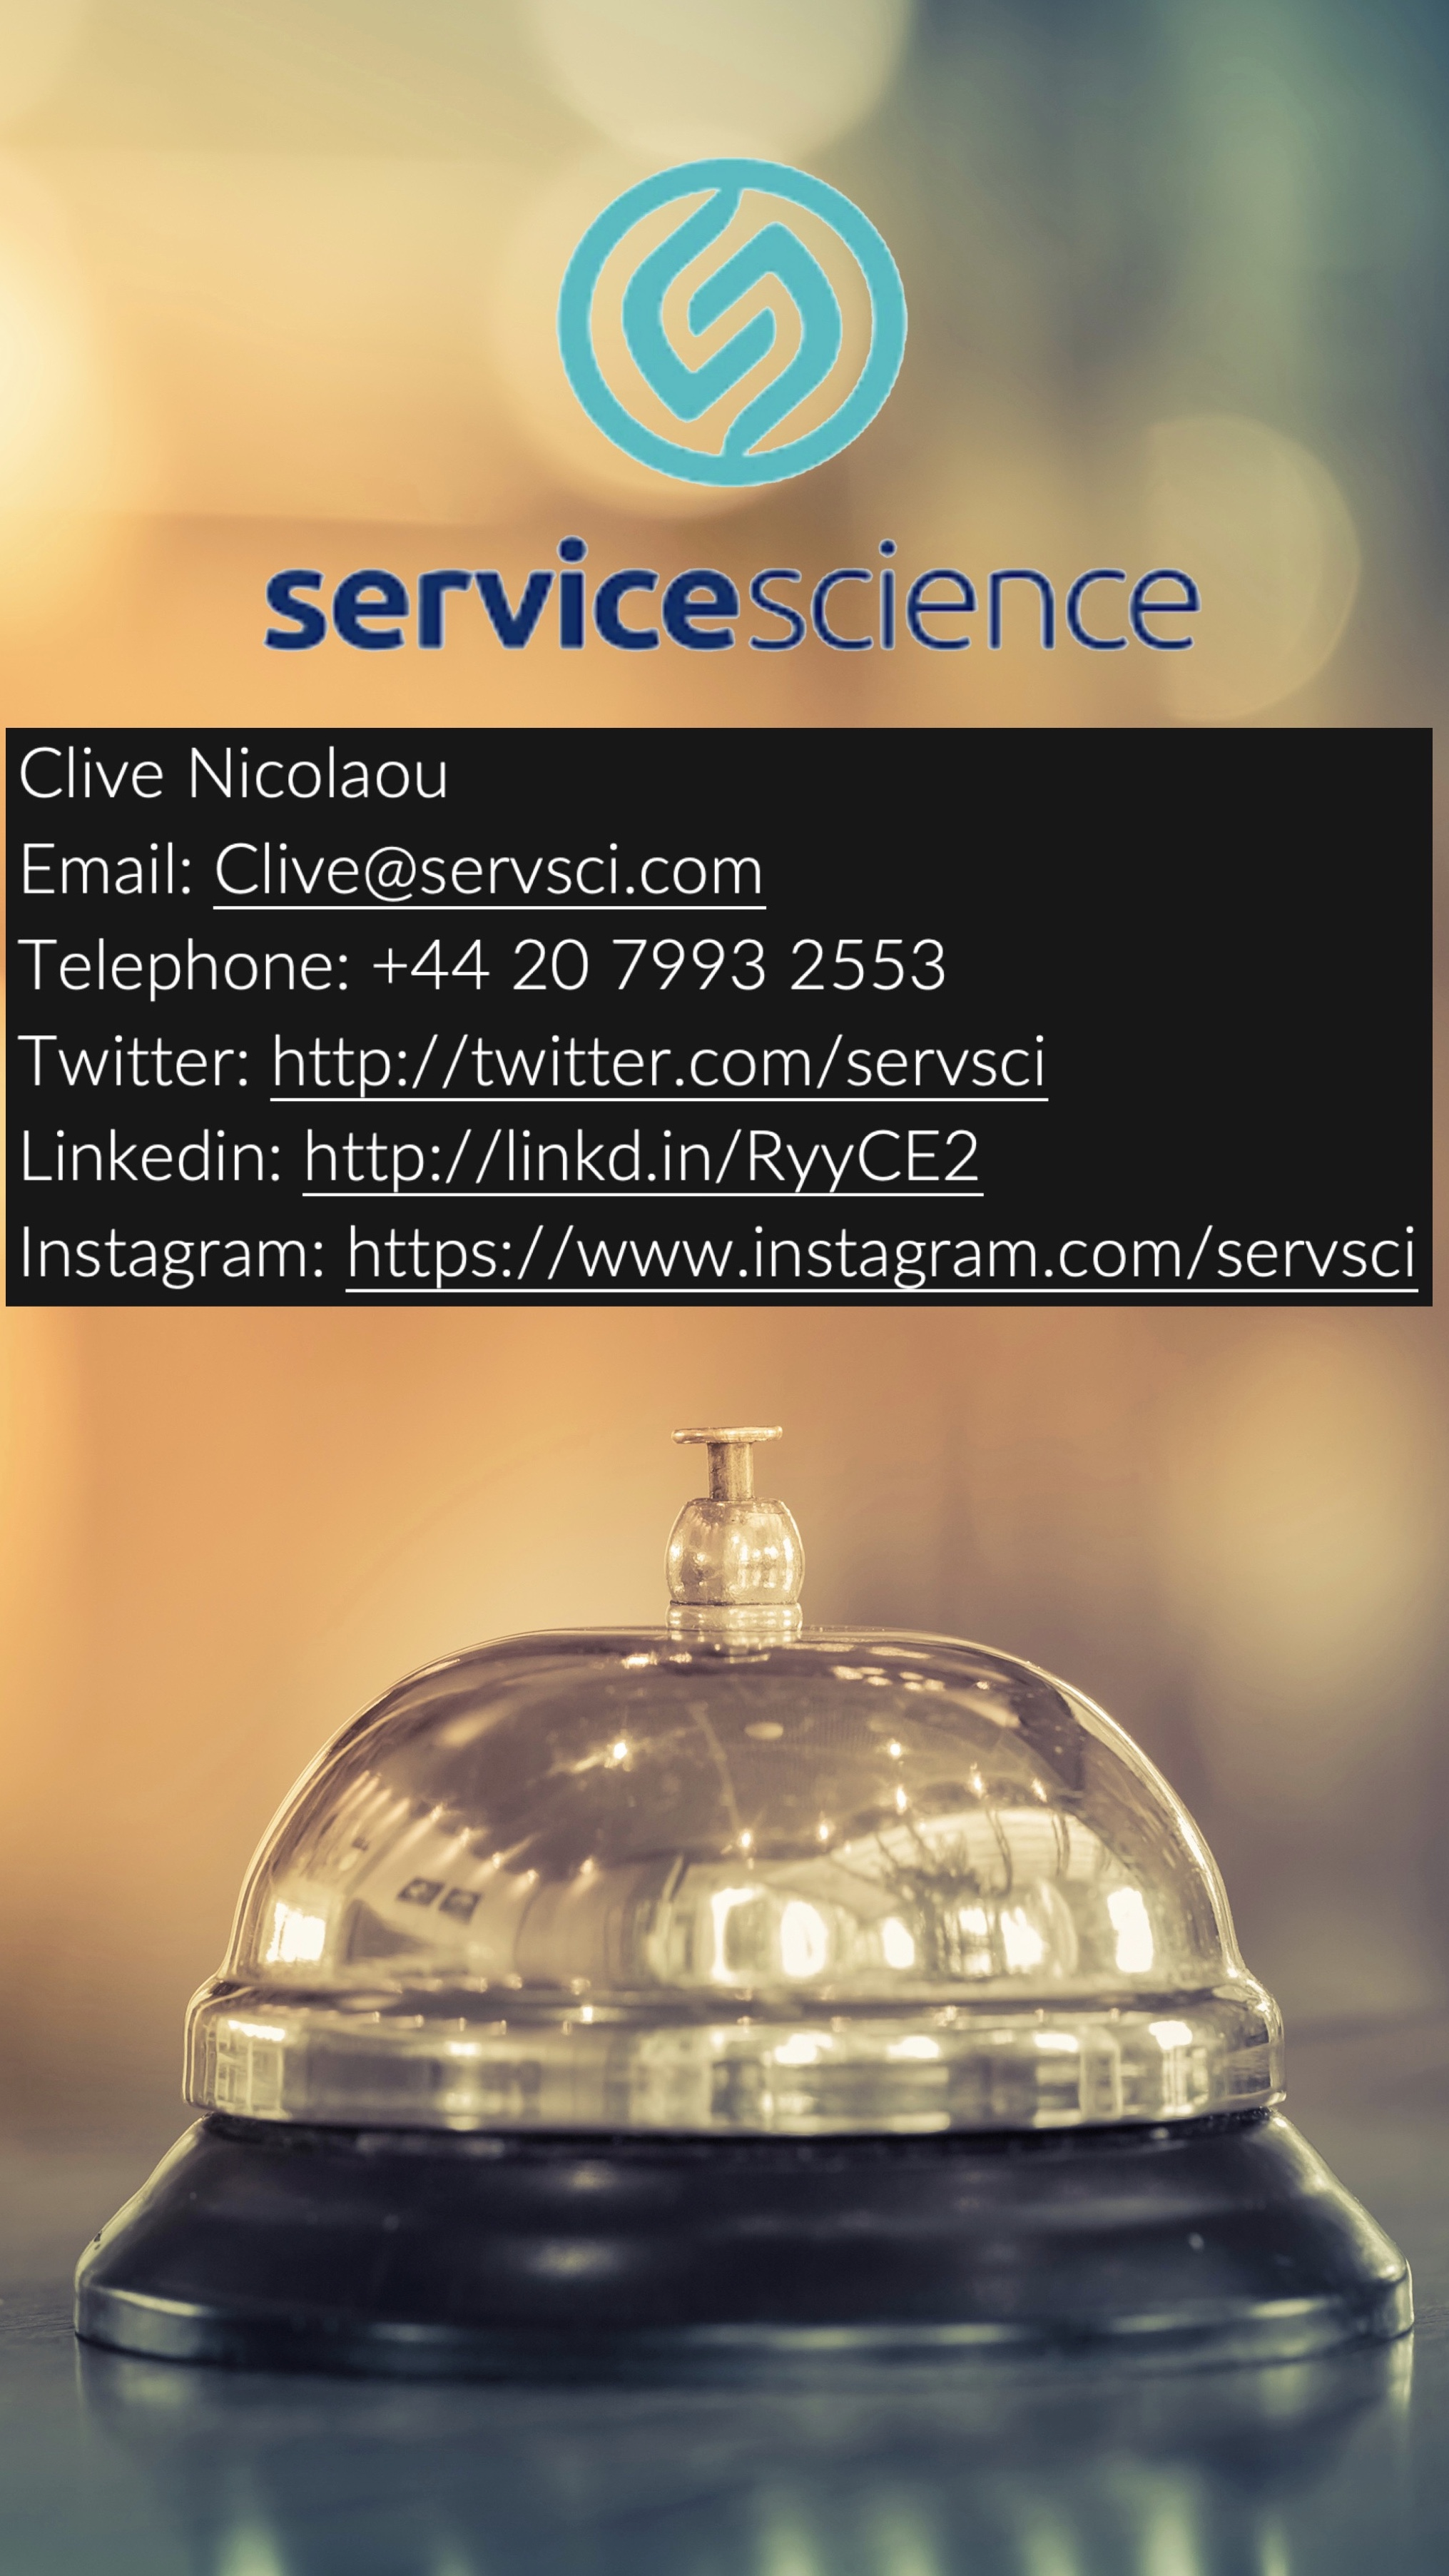 About Service Science - Bringing Insight and Expertise togetherService Science is a specialist market research agency focused on the hospitality, leisure and tourism sectors. We work with our clients to help them manage and improve the Customer Experience. We have four practice areas:Think Like Your Customers:Using behavioural science techniques we provide real insight to help understand and influence customer behaviourOnline Reputation Management:Through the monitoring and management of your Online Reputation we provide the means to increase loyalty and maintain your competitive edgeService Quality Measurement:Through mystery shopping, brand standards audits and survey tools you can deliver exceptional service that resonates with your customersEmployee Engagement:Our innovative approach ensures your teams are motivated and engaged so they will deliver service that sets you apartWe'll help you access meaningful insight into your customers and your people to improve the service you deliver. Get the equation right and you'll create the perfect chemistry for your business.